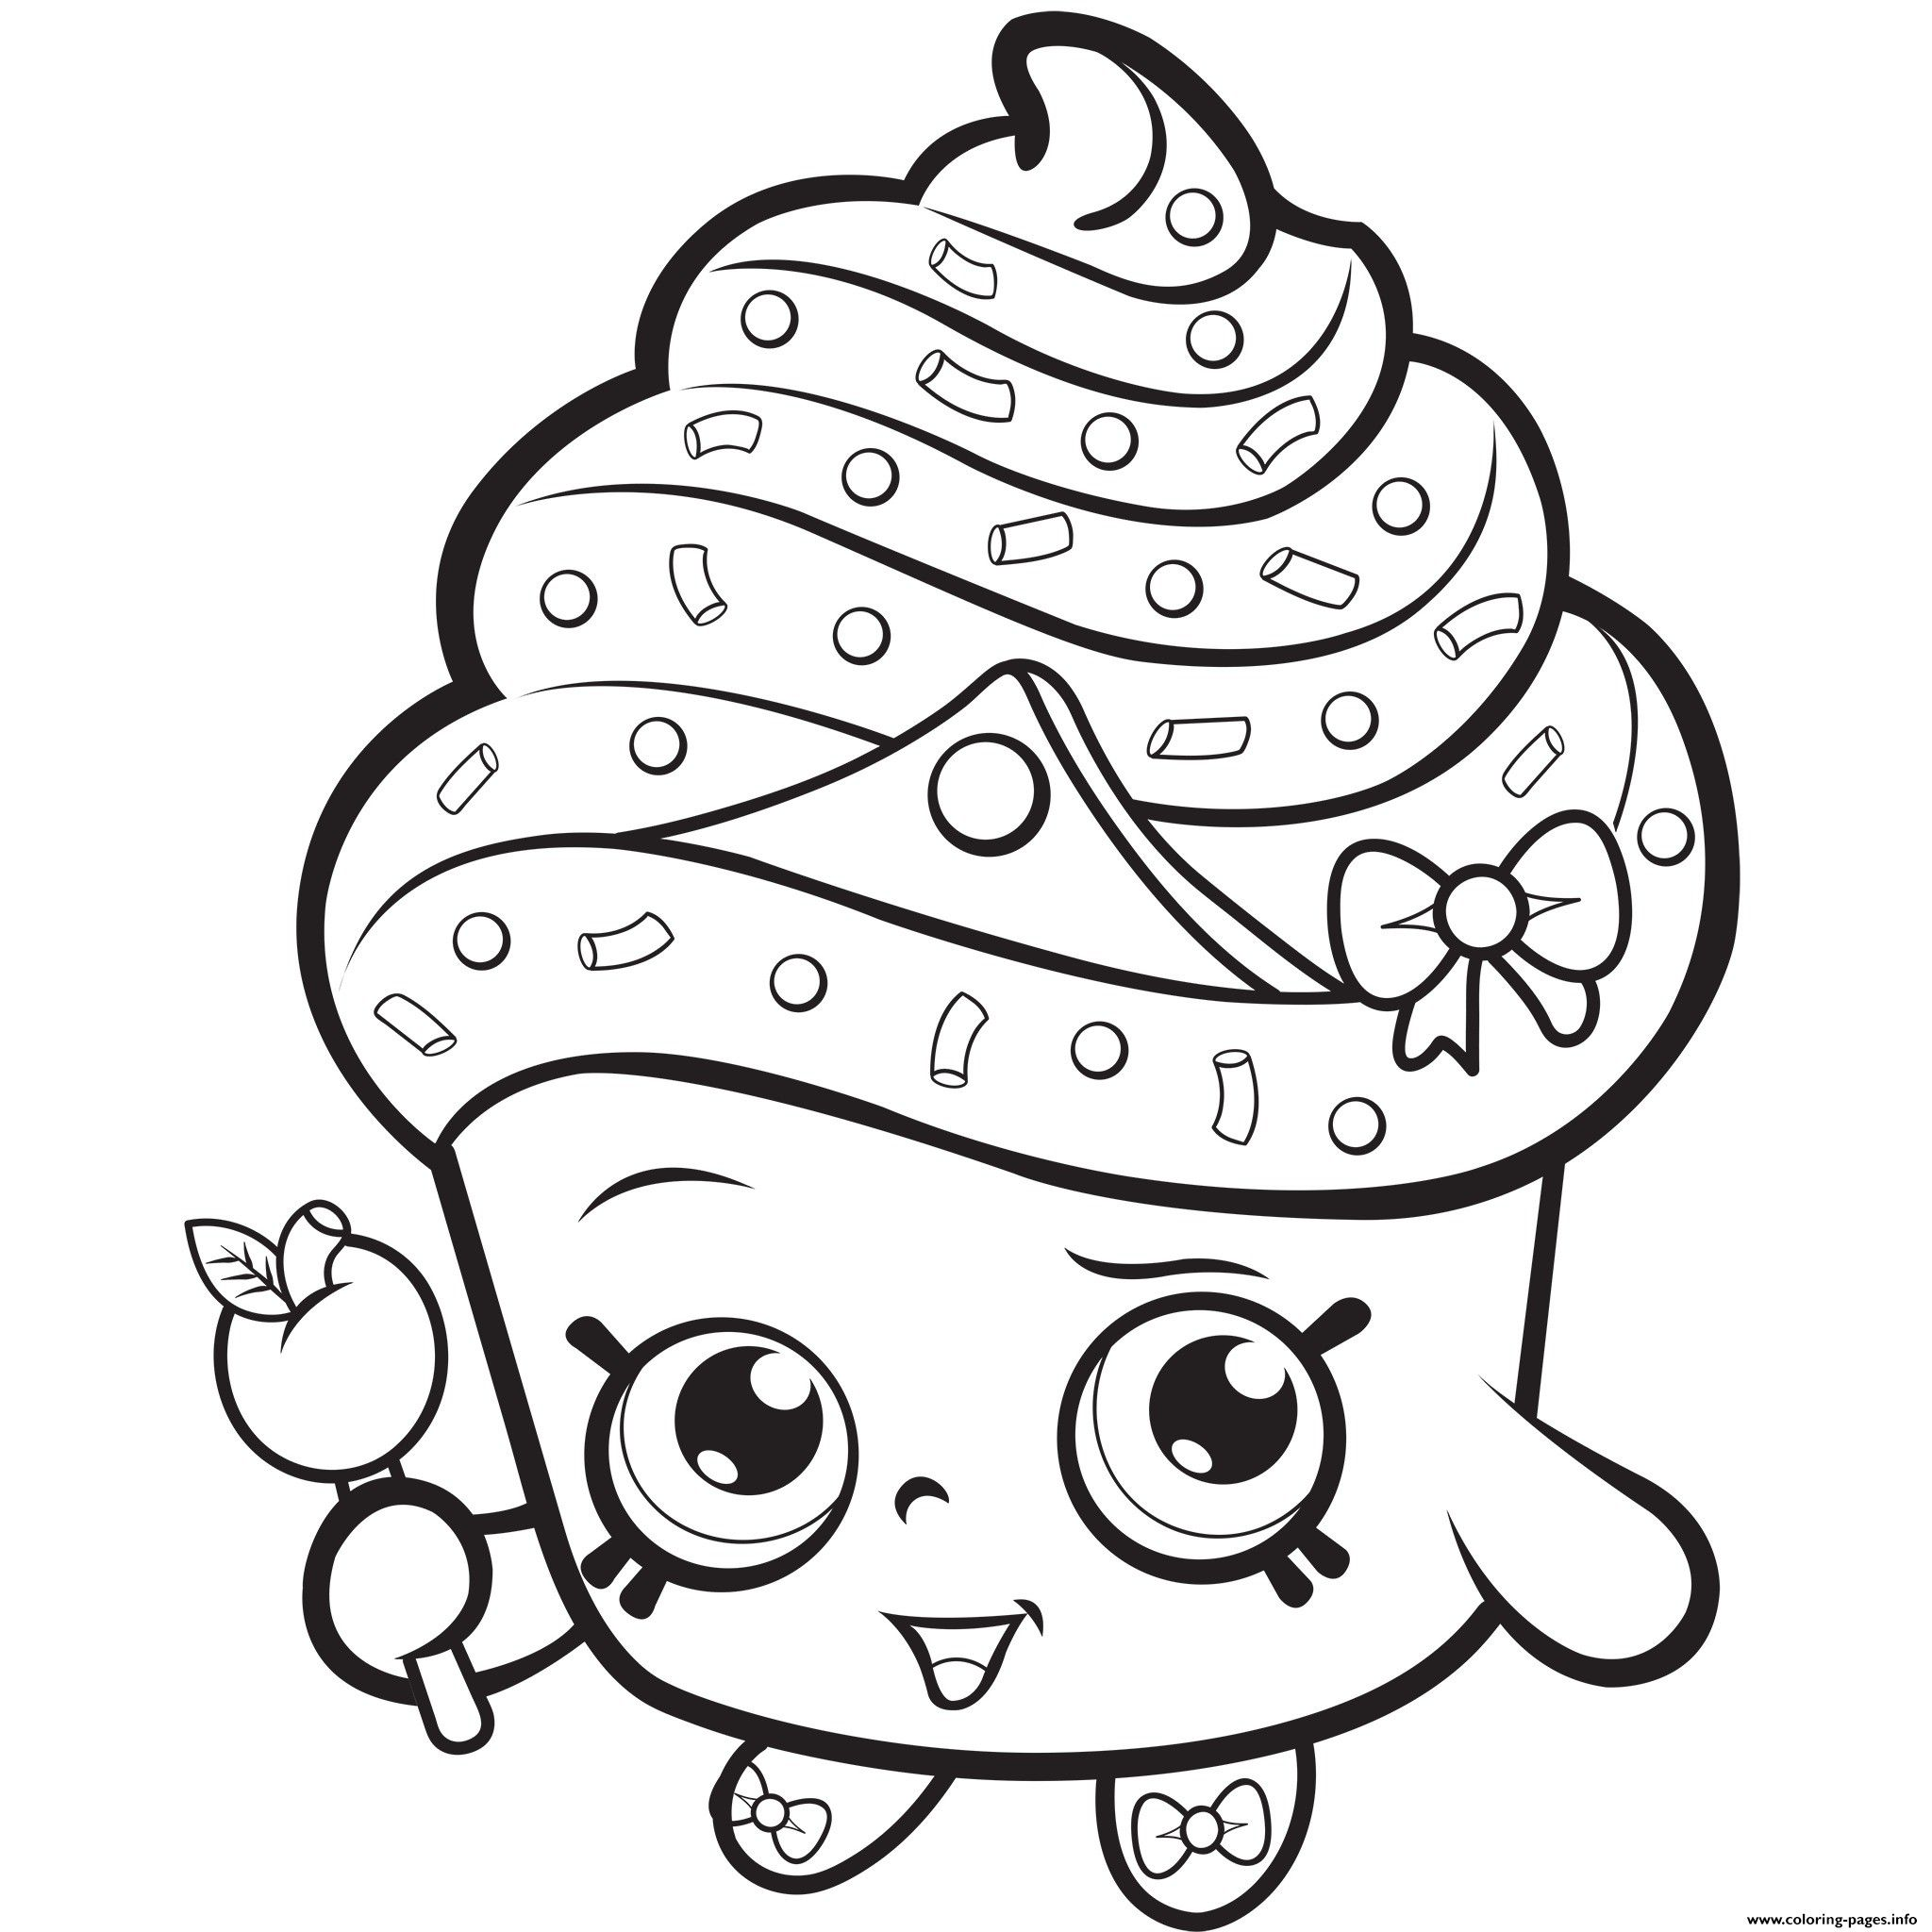 Princess Shopkins Coloring Pages From The Thousand Photographs On The Internet About P Shopkin Coloring Pages Shopkins Colouring Pages Cupcake Coloring Pages